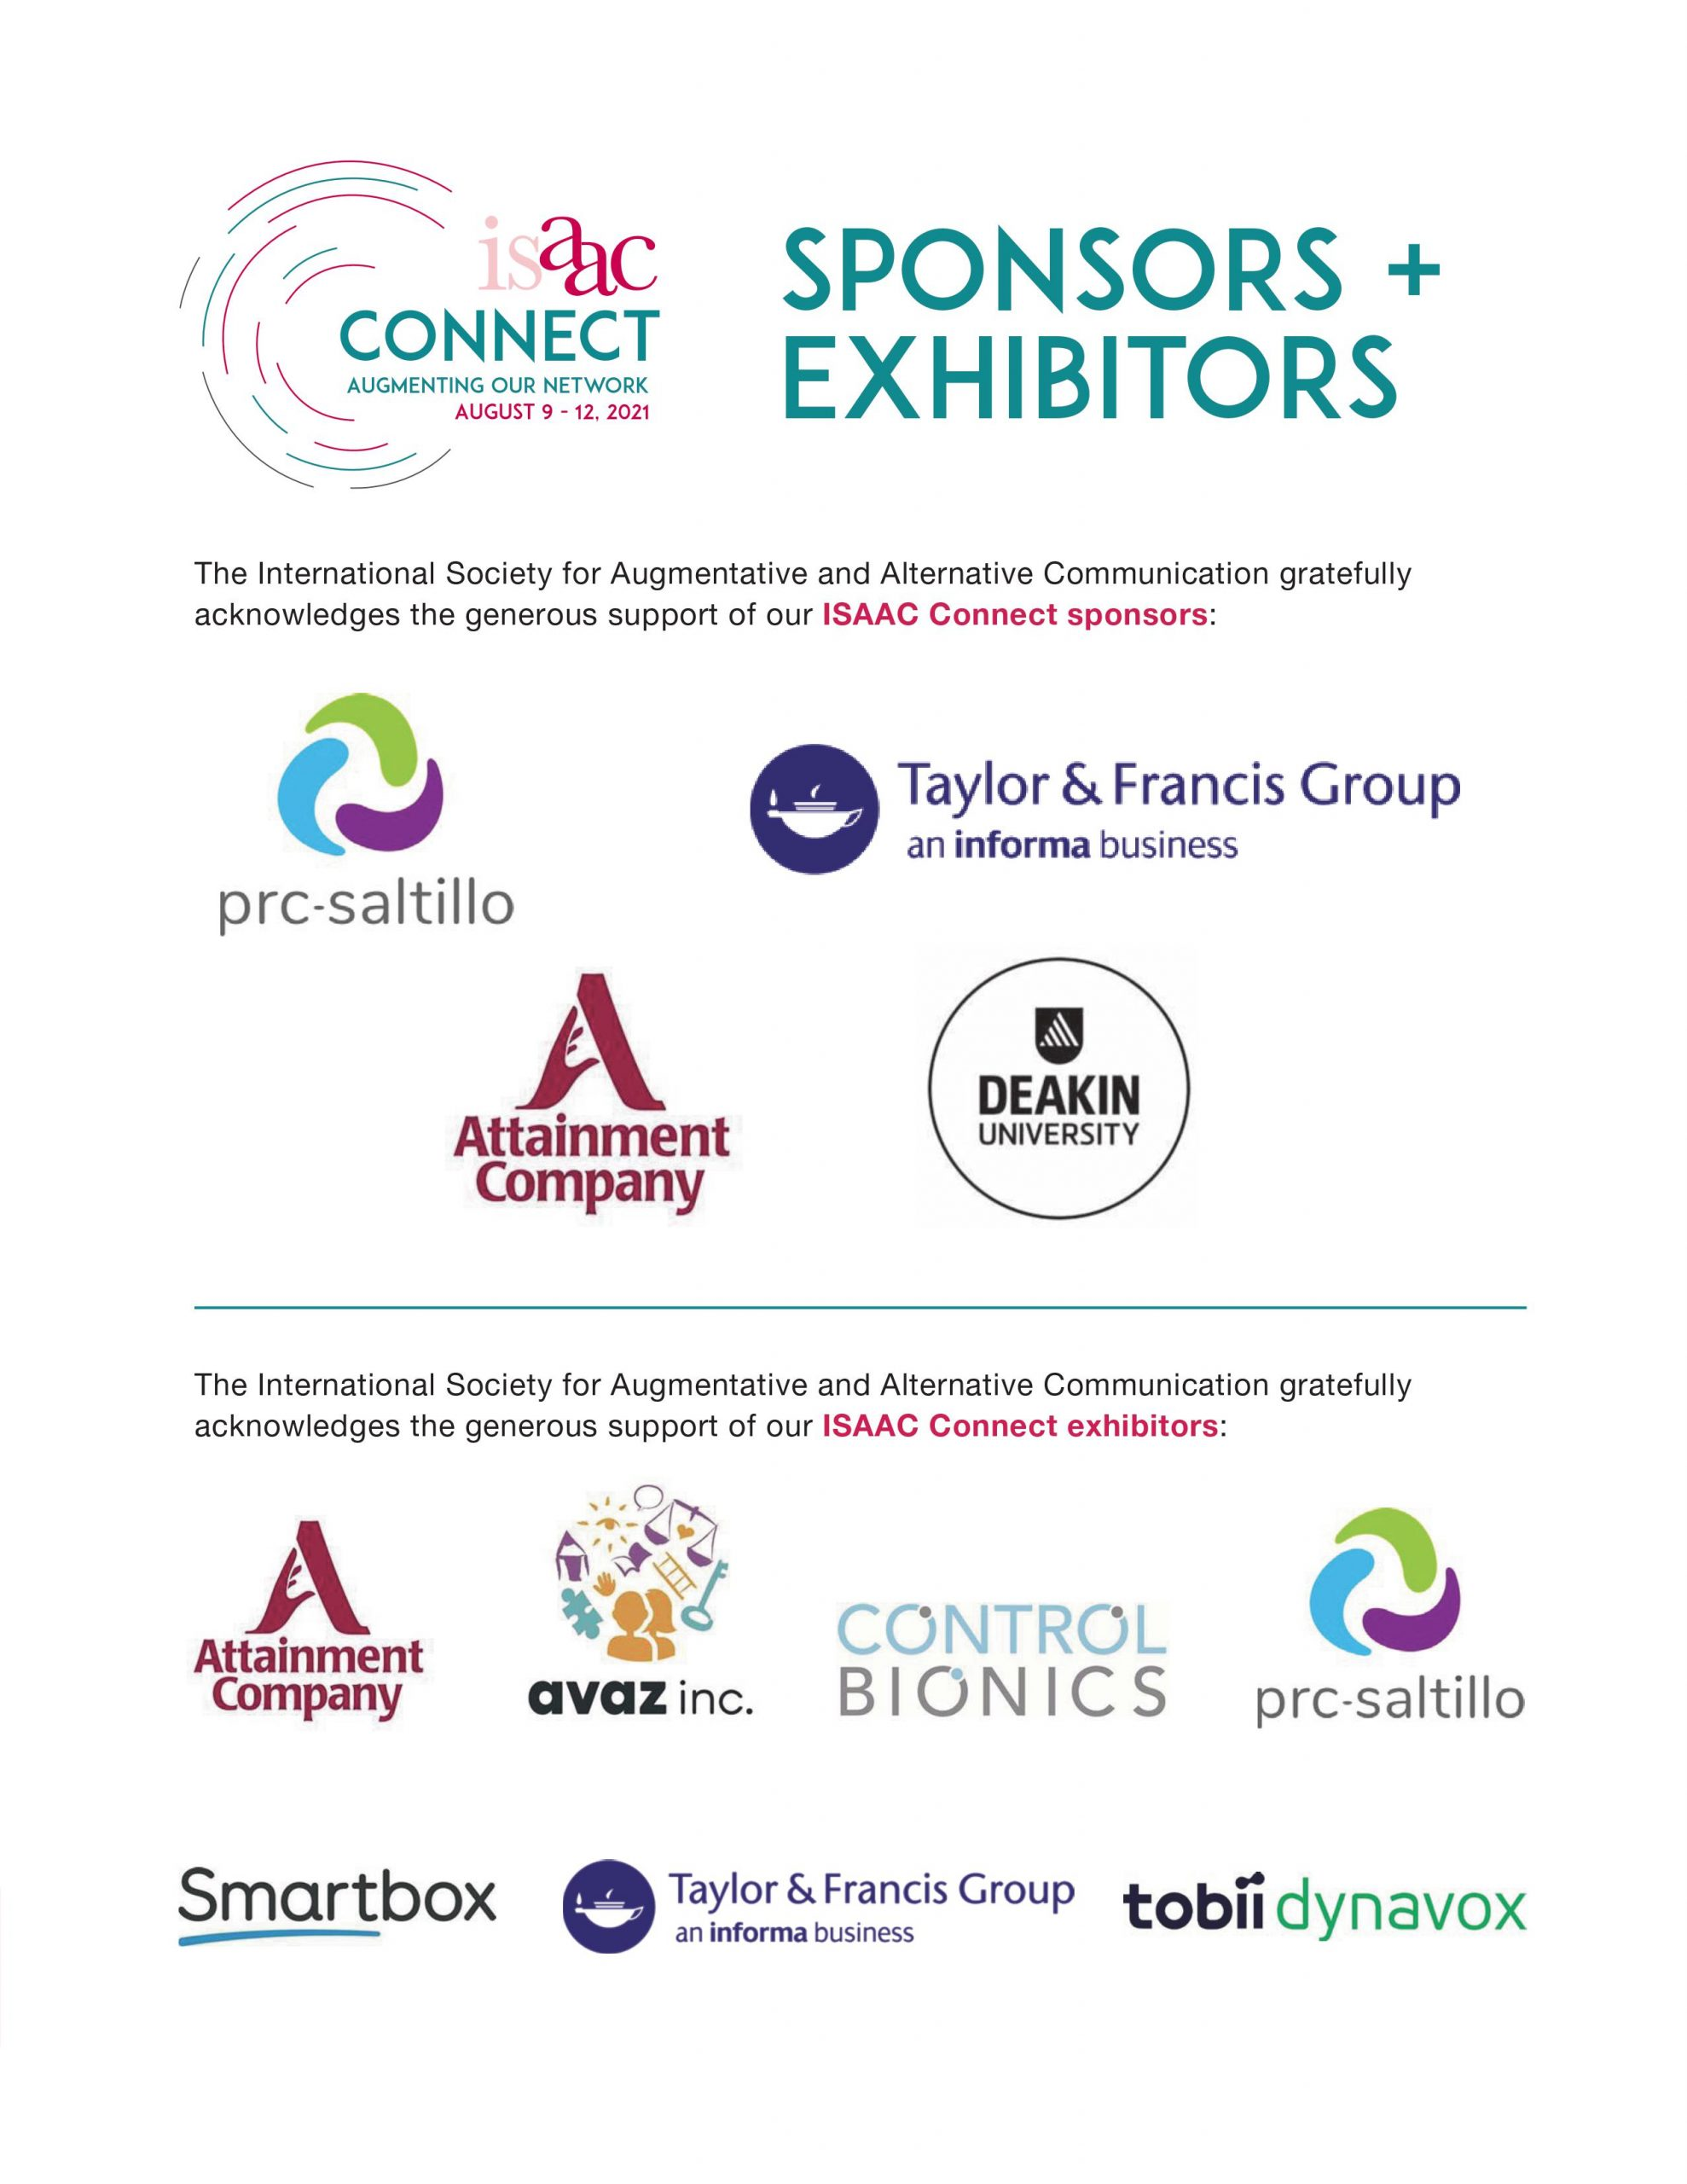 ISAAC Connect Sponsors and Exhibitors